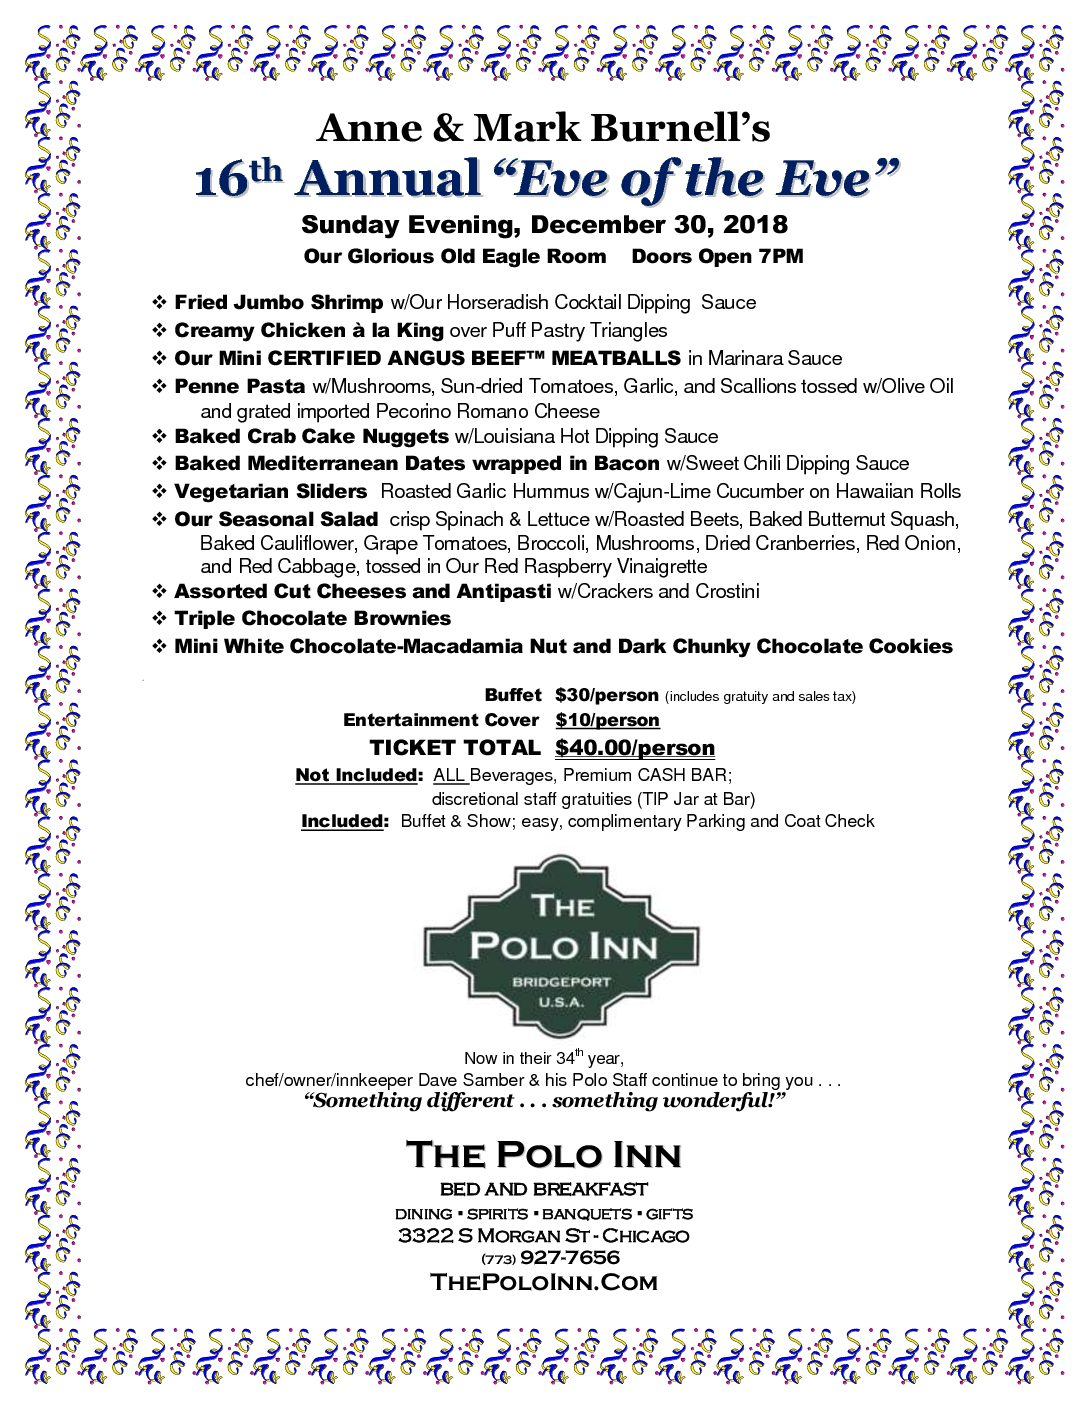 Eve of the Eve 12-30-18 Menu PDF